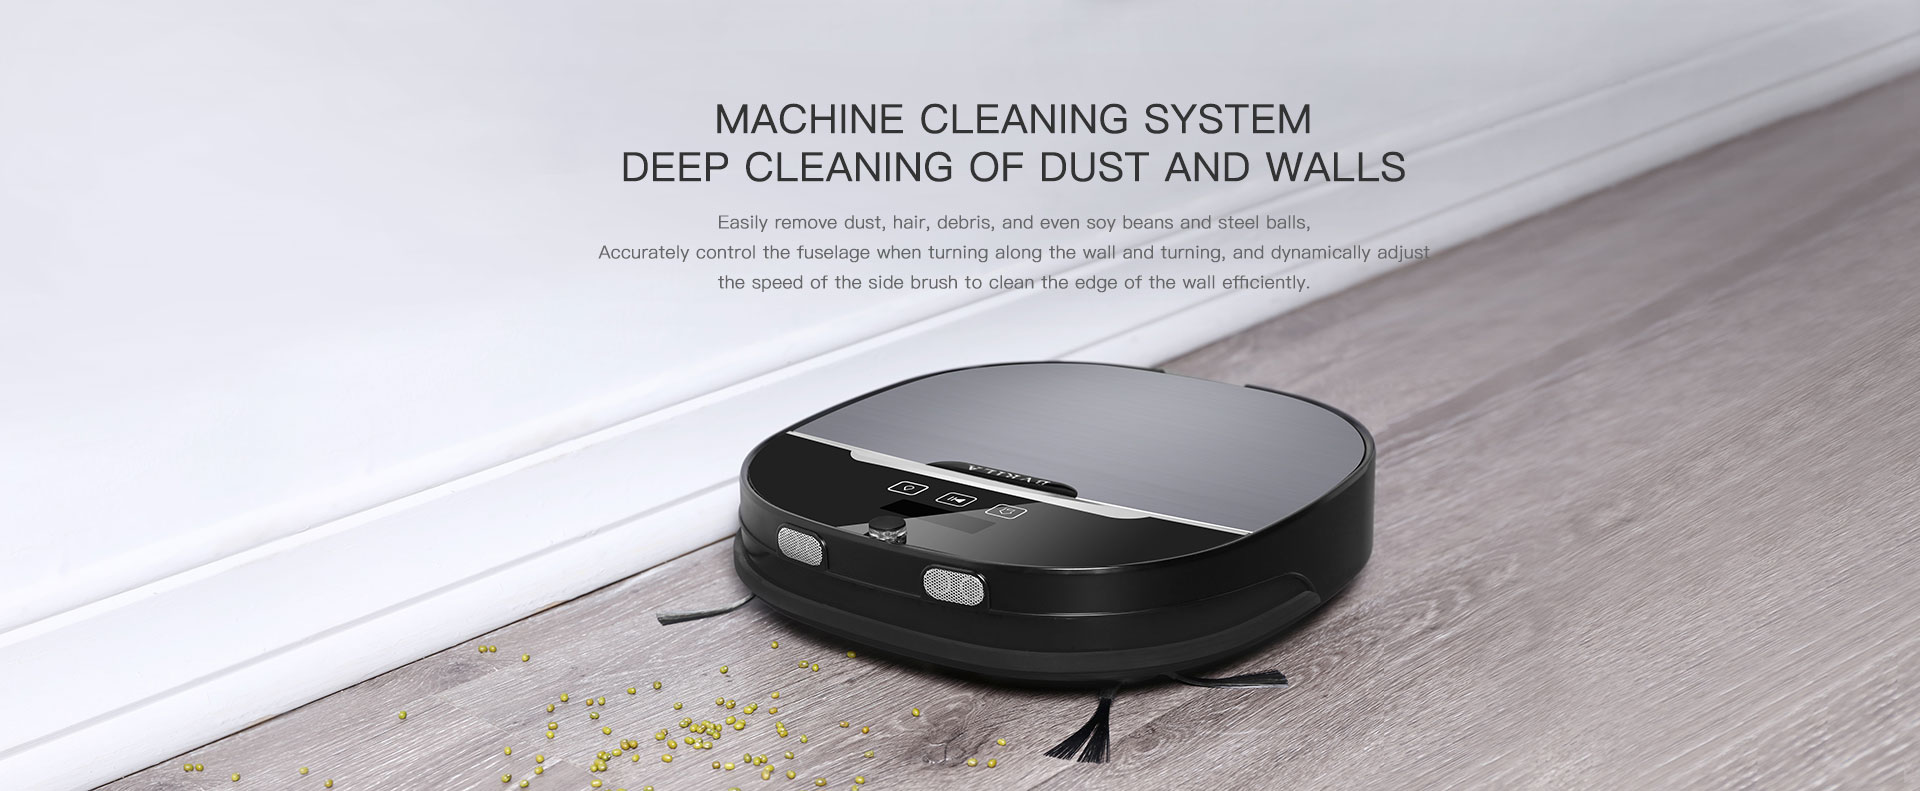 Machine cleaning system Deep cleaning of dust and wall